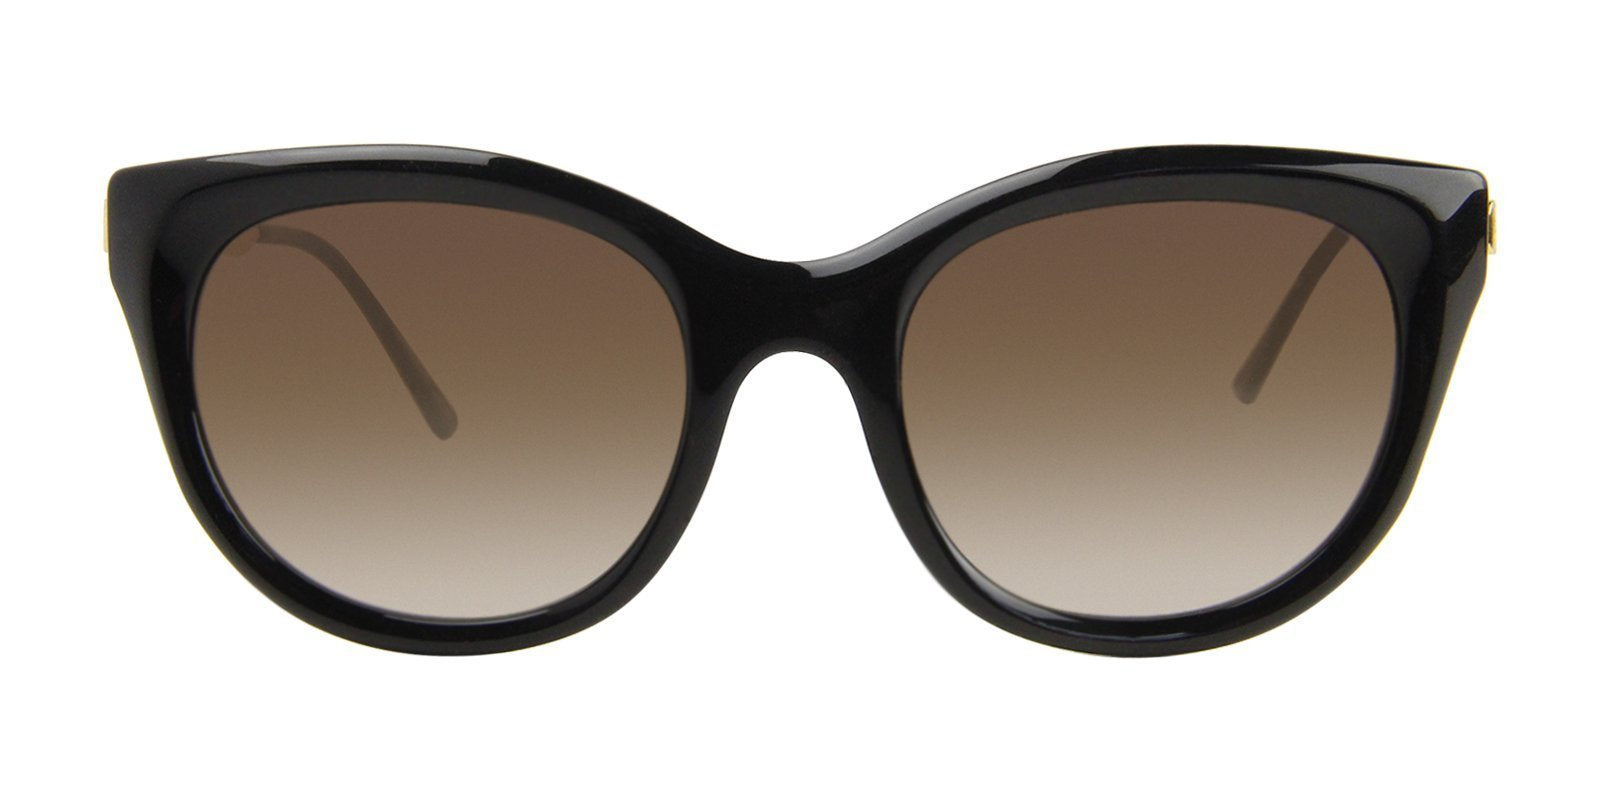 Thierry Lasry - DirtyMindy Black Cat-Eye Women Sunglasses - 56mm-Sunglasses-Designer Eyes